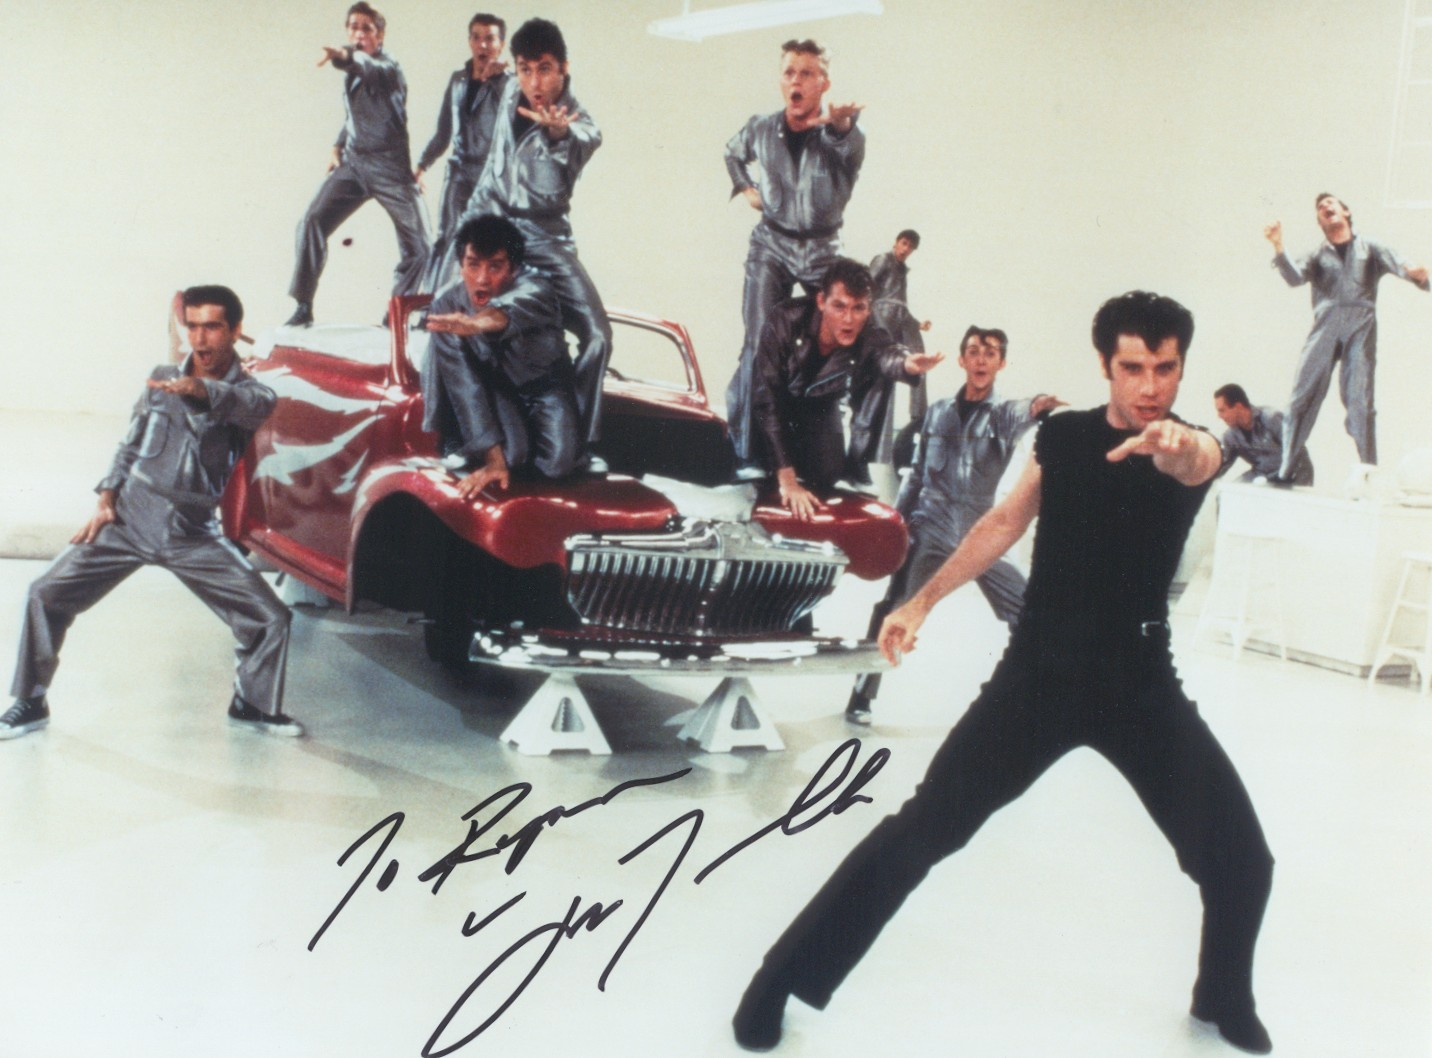 http://sigsofsuccess.files.wordpress.com/2010/12/john-travolta-grease-lightning.jpg